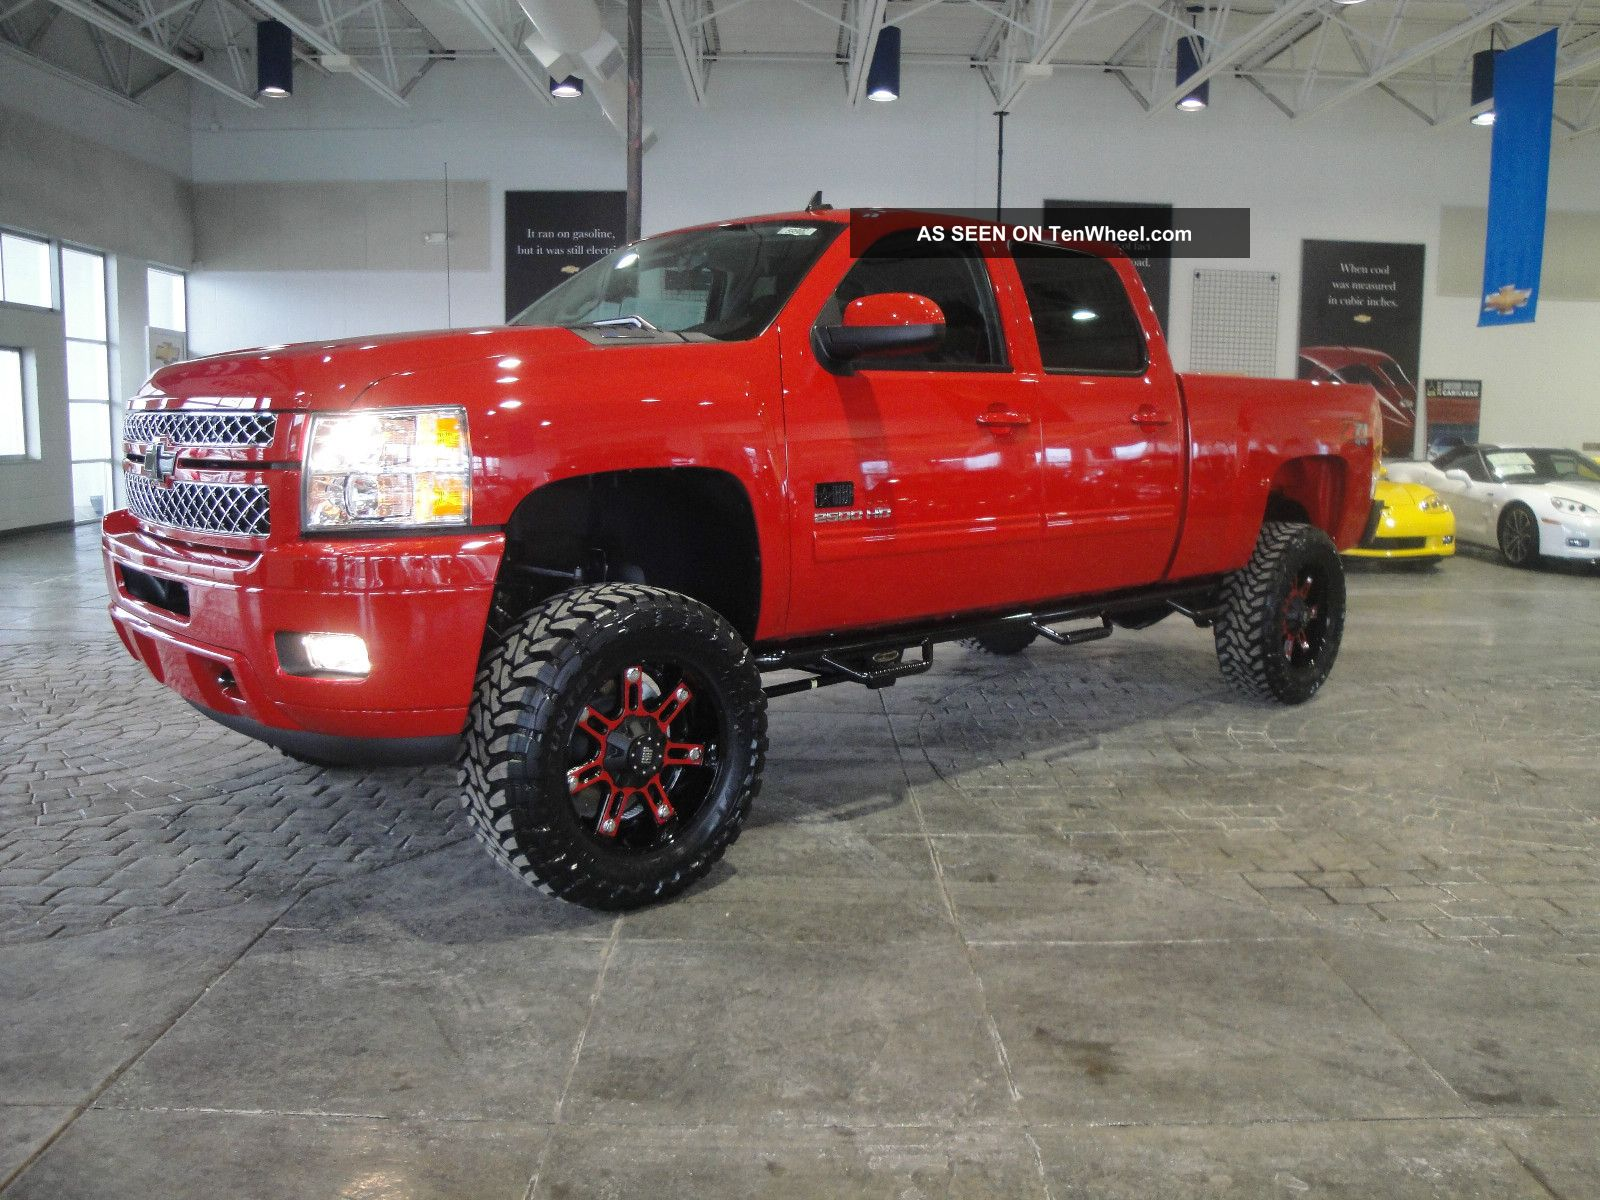 2013 Pro Comp Brp Lifted Monster Chevy Silverado 2500hd